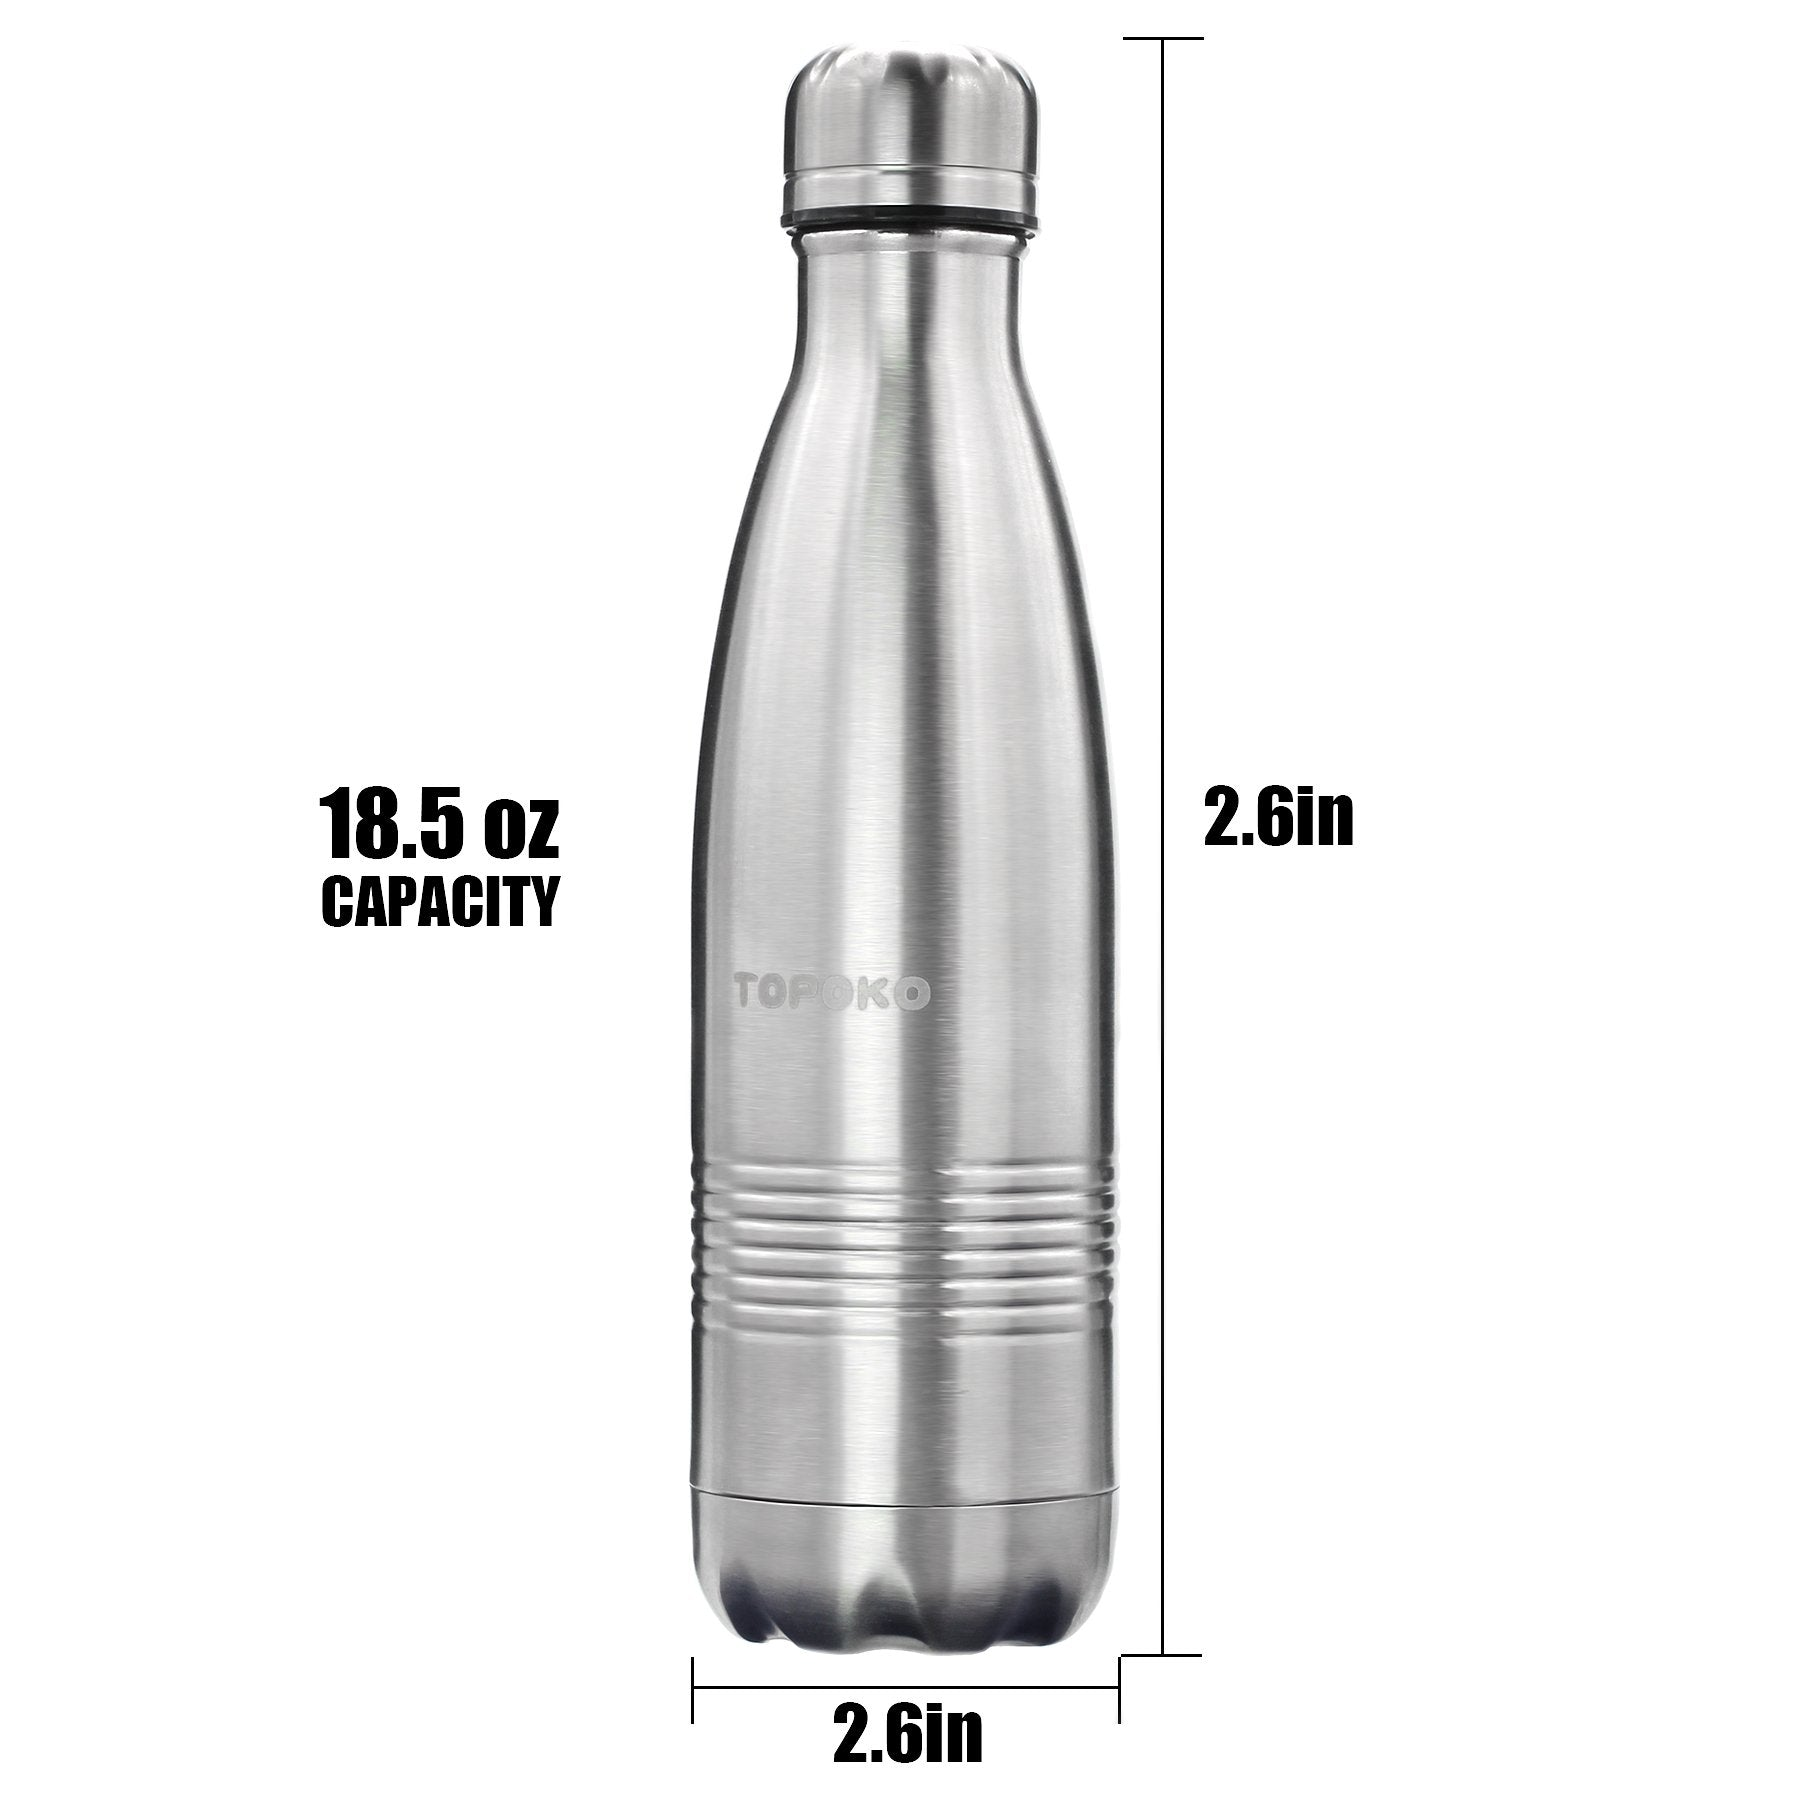 Classic Shape Double Wall Insulated Stainless Steel Vacuum Bottle